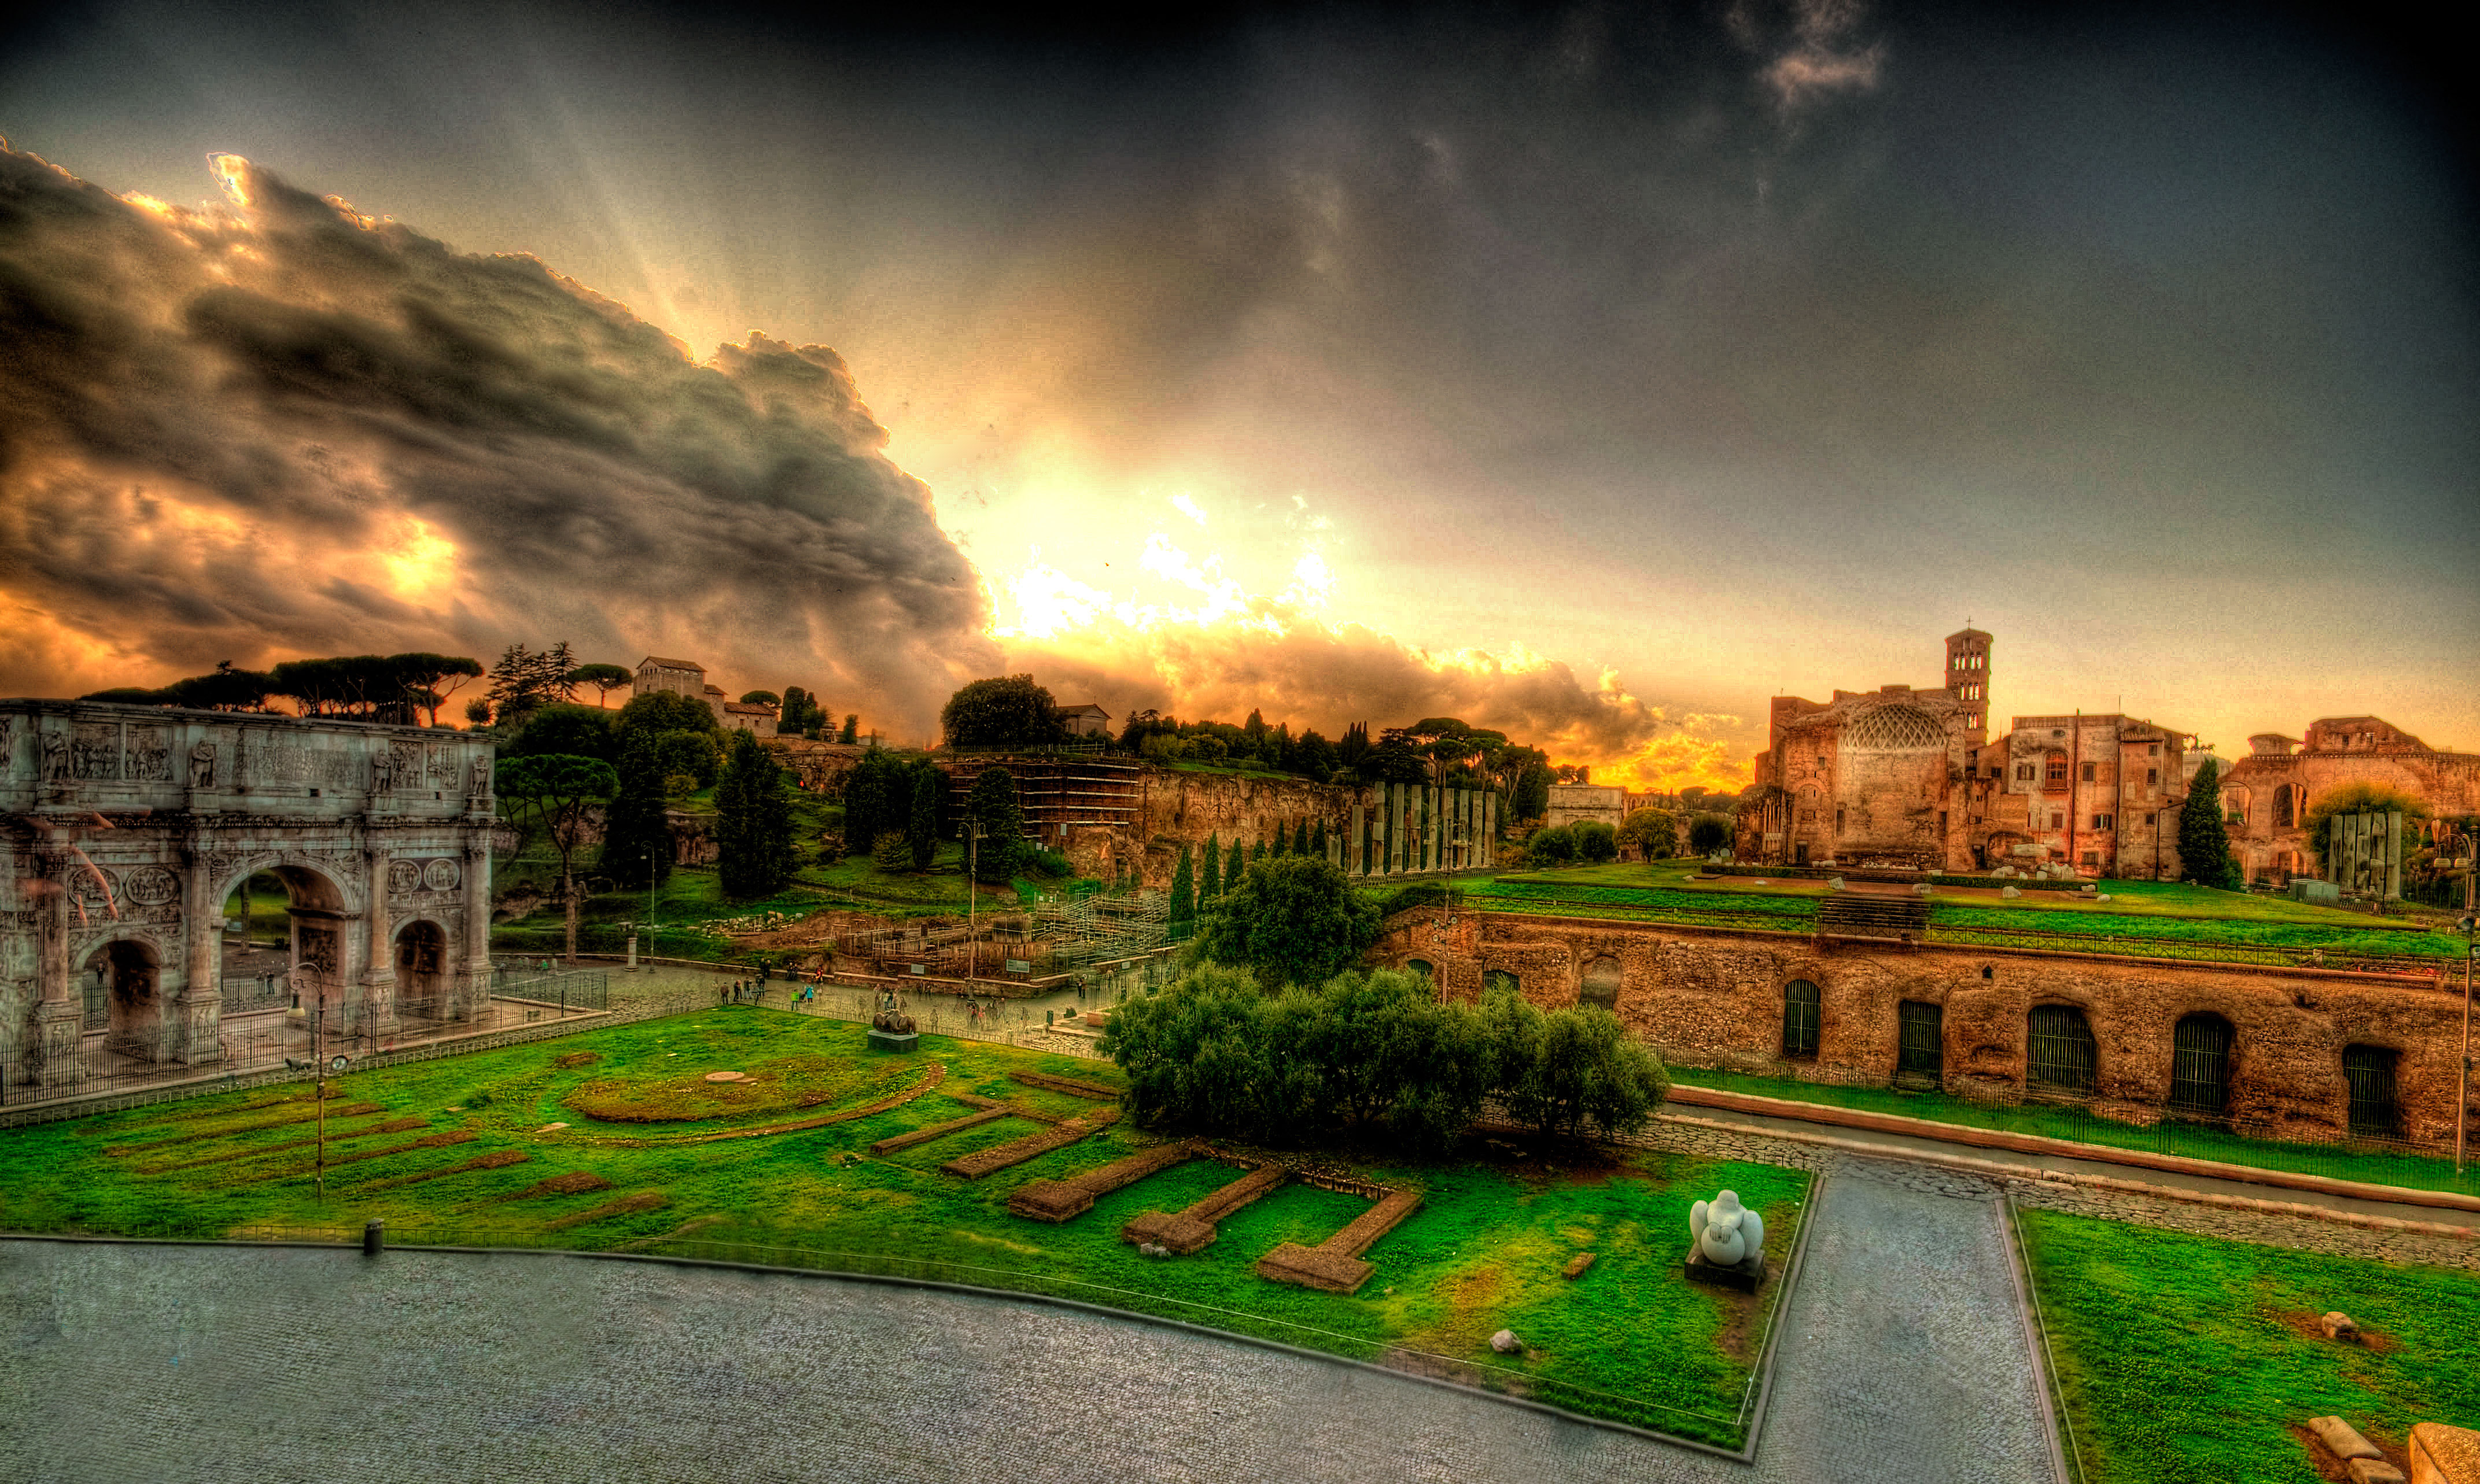 http://fc00.deviantart.net/fs50/f/2009/308/f/9/View_from_Colosseum_by_andsol1.jpg